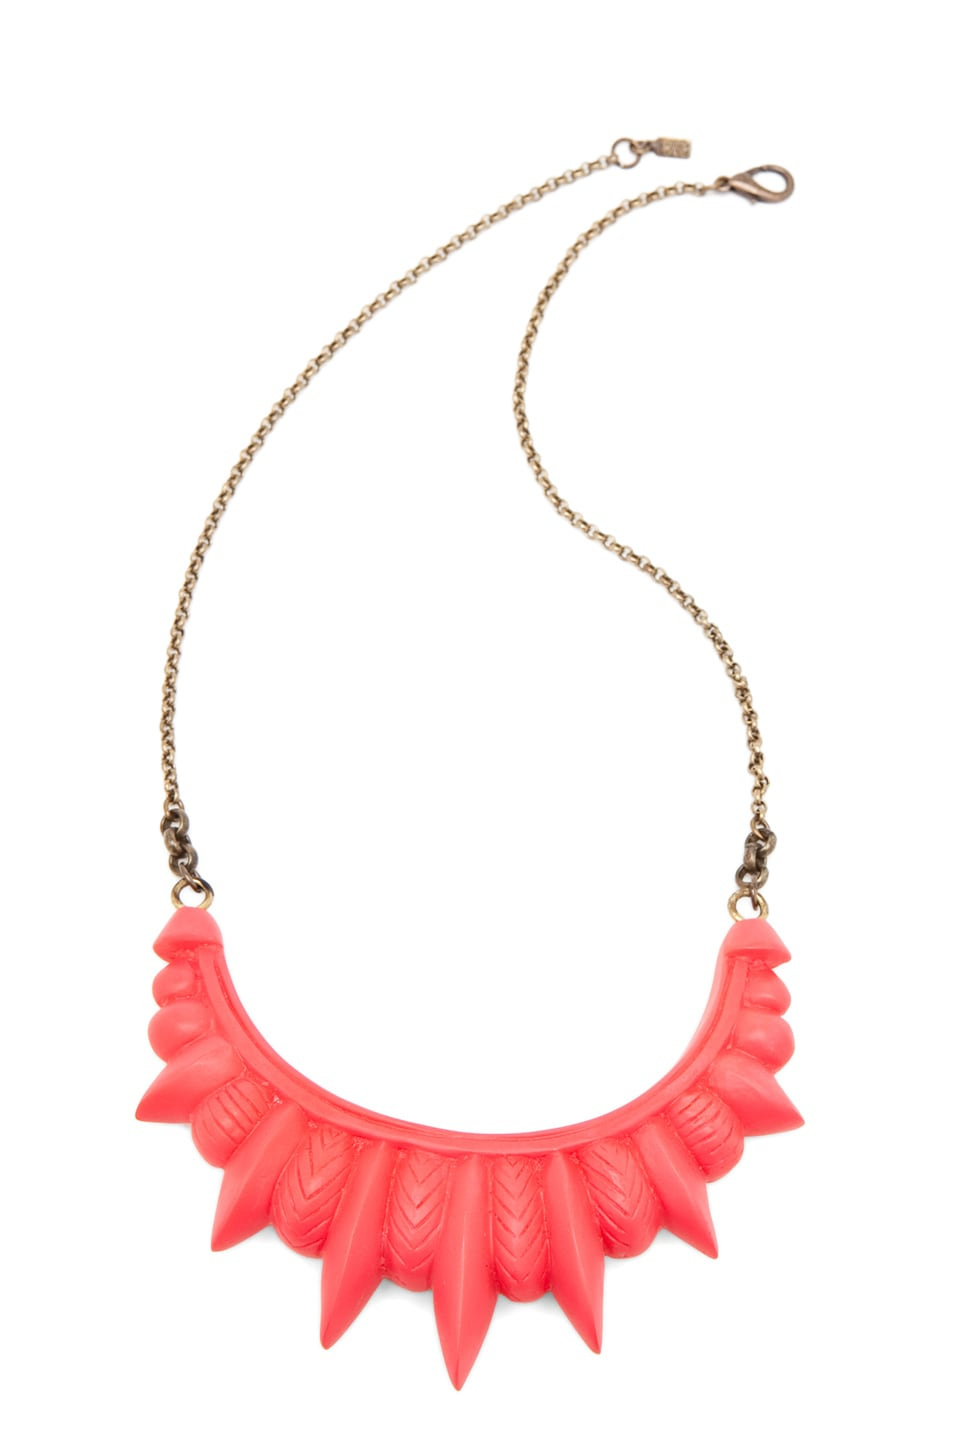 Image 1 of Pamela Love Resin Tribal Spike Necklace in Red Matte